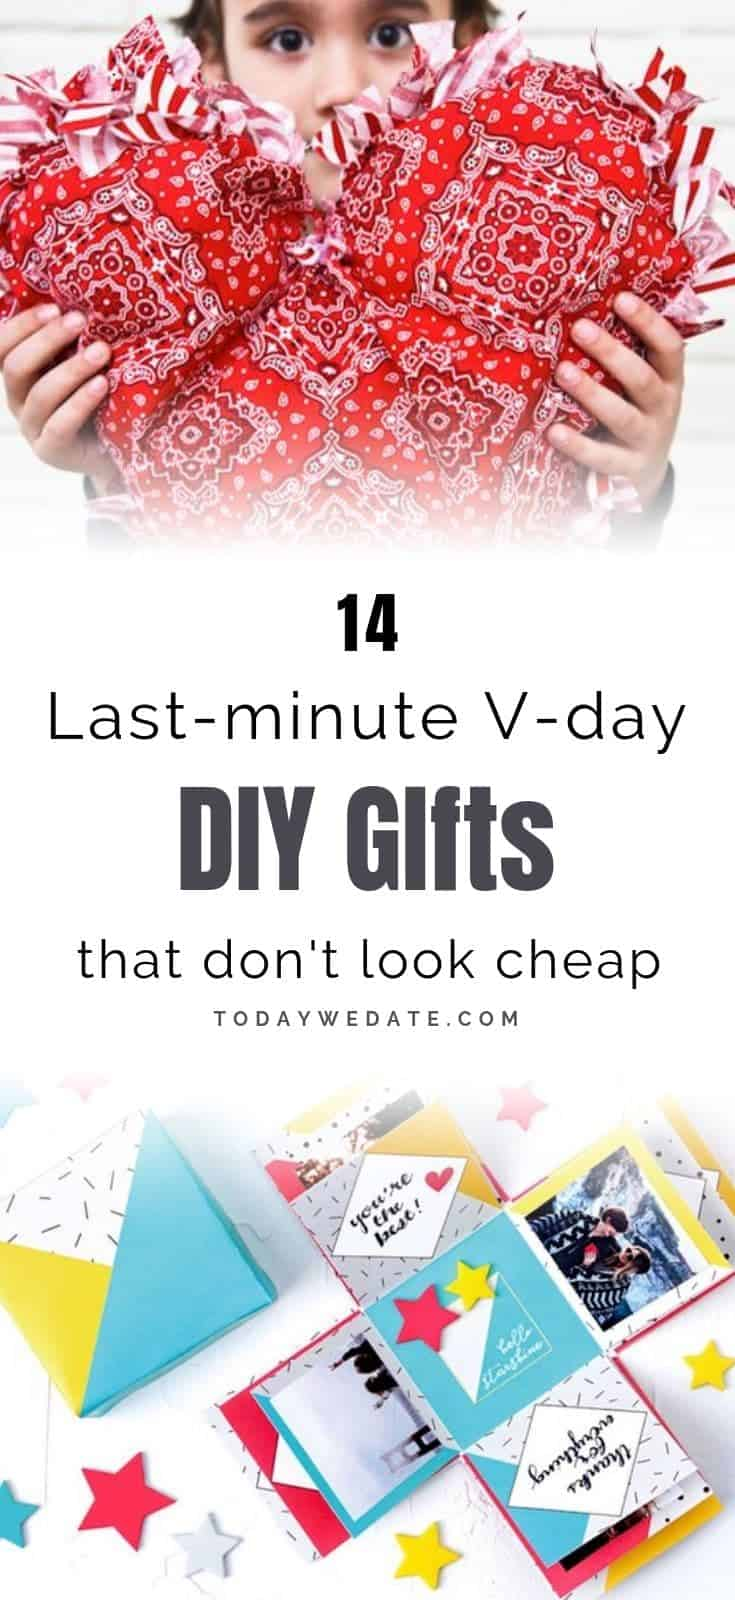 14 Last-minute Easy DIY gifts for Valentine's Day that don't look cheap - todaywedate.com//DIY ideas for boyfriend/DIY gifts/DIY on a budget/Couple DIY projects/cute diy/DIY ideasfor wedding/valentines day gifts for him/valentines gifts for him/valentines day gifts for her/good valentines day gifts/personalized valentine gifts/valentine gift baskets/valentine gifts for husband/valentine crafts/valentine crafts for kids/valentine crafts ideas/valentine crafts for adults/valentine crafts pinterest/homemade valentines day gifts for him/valentines day projects